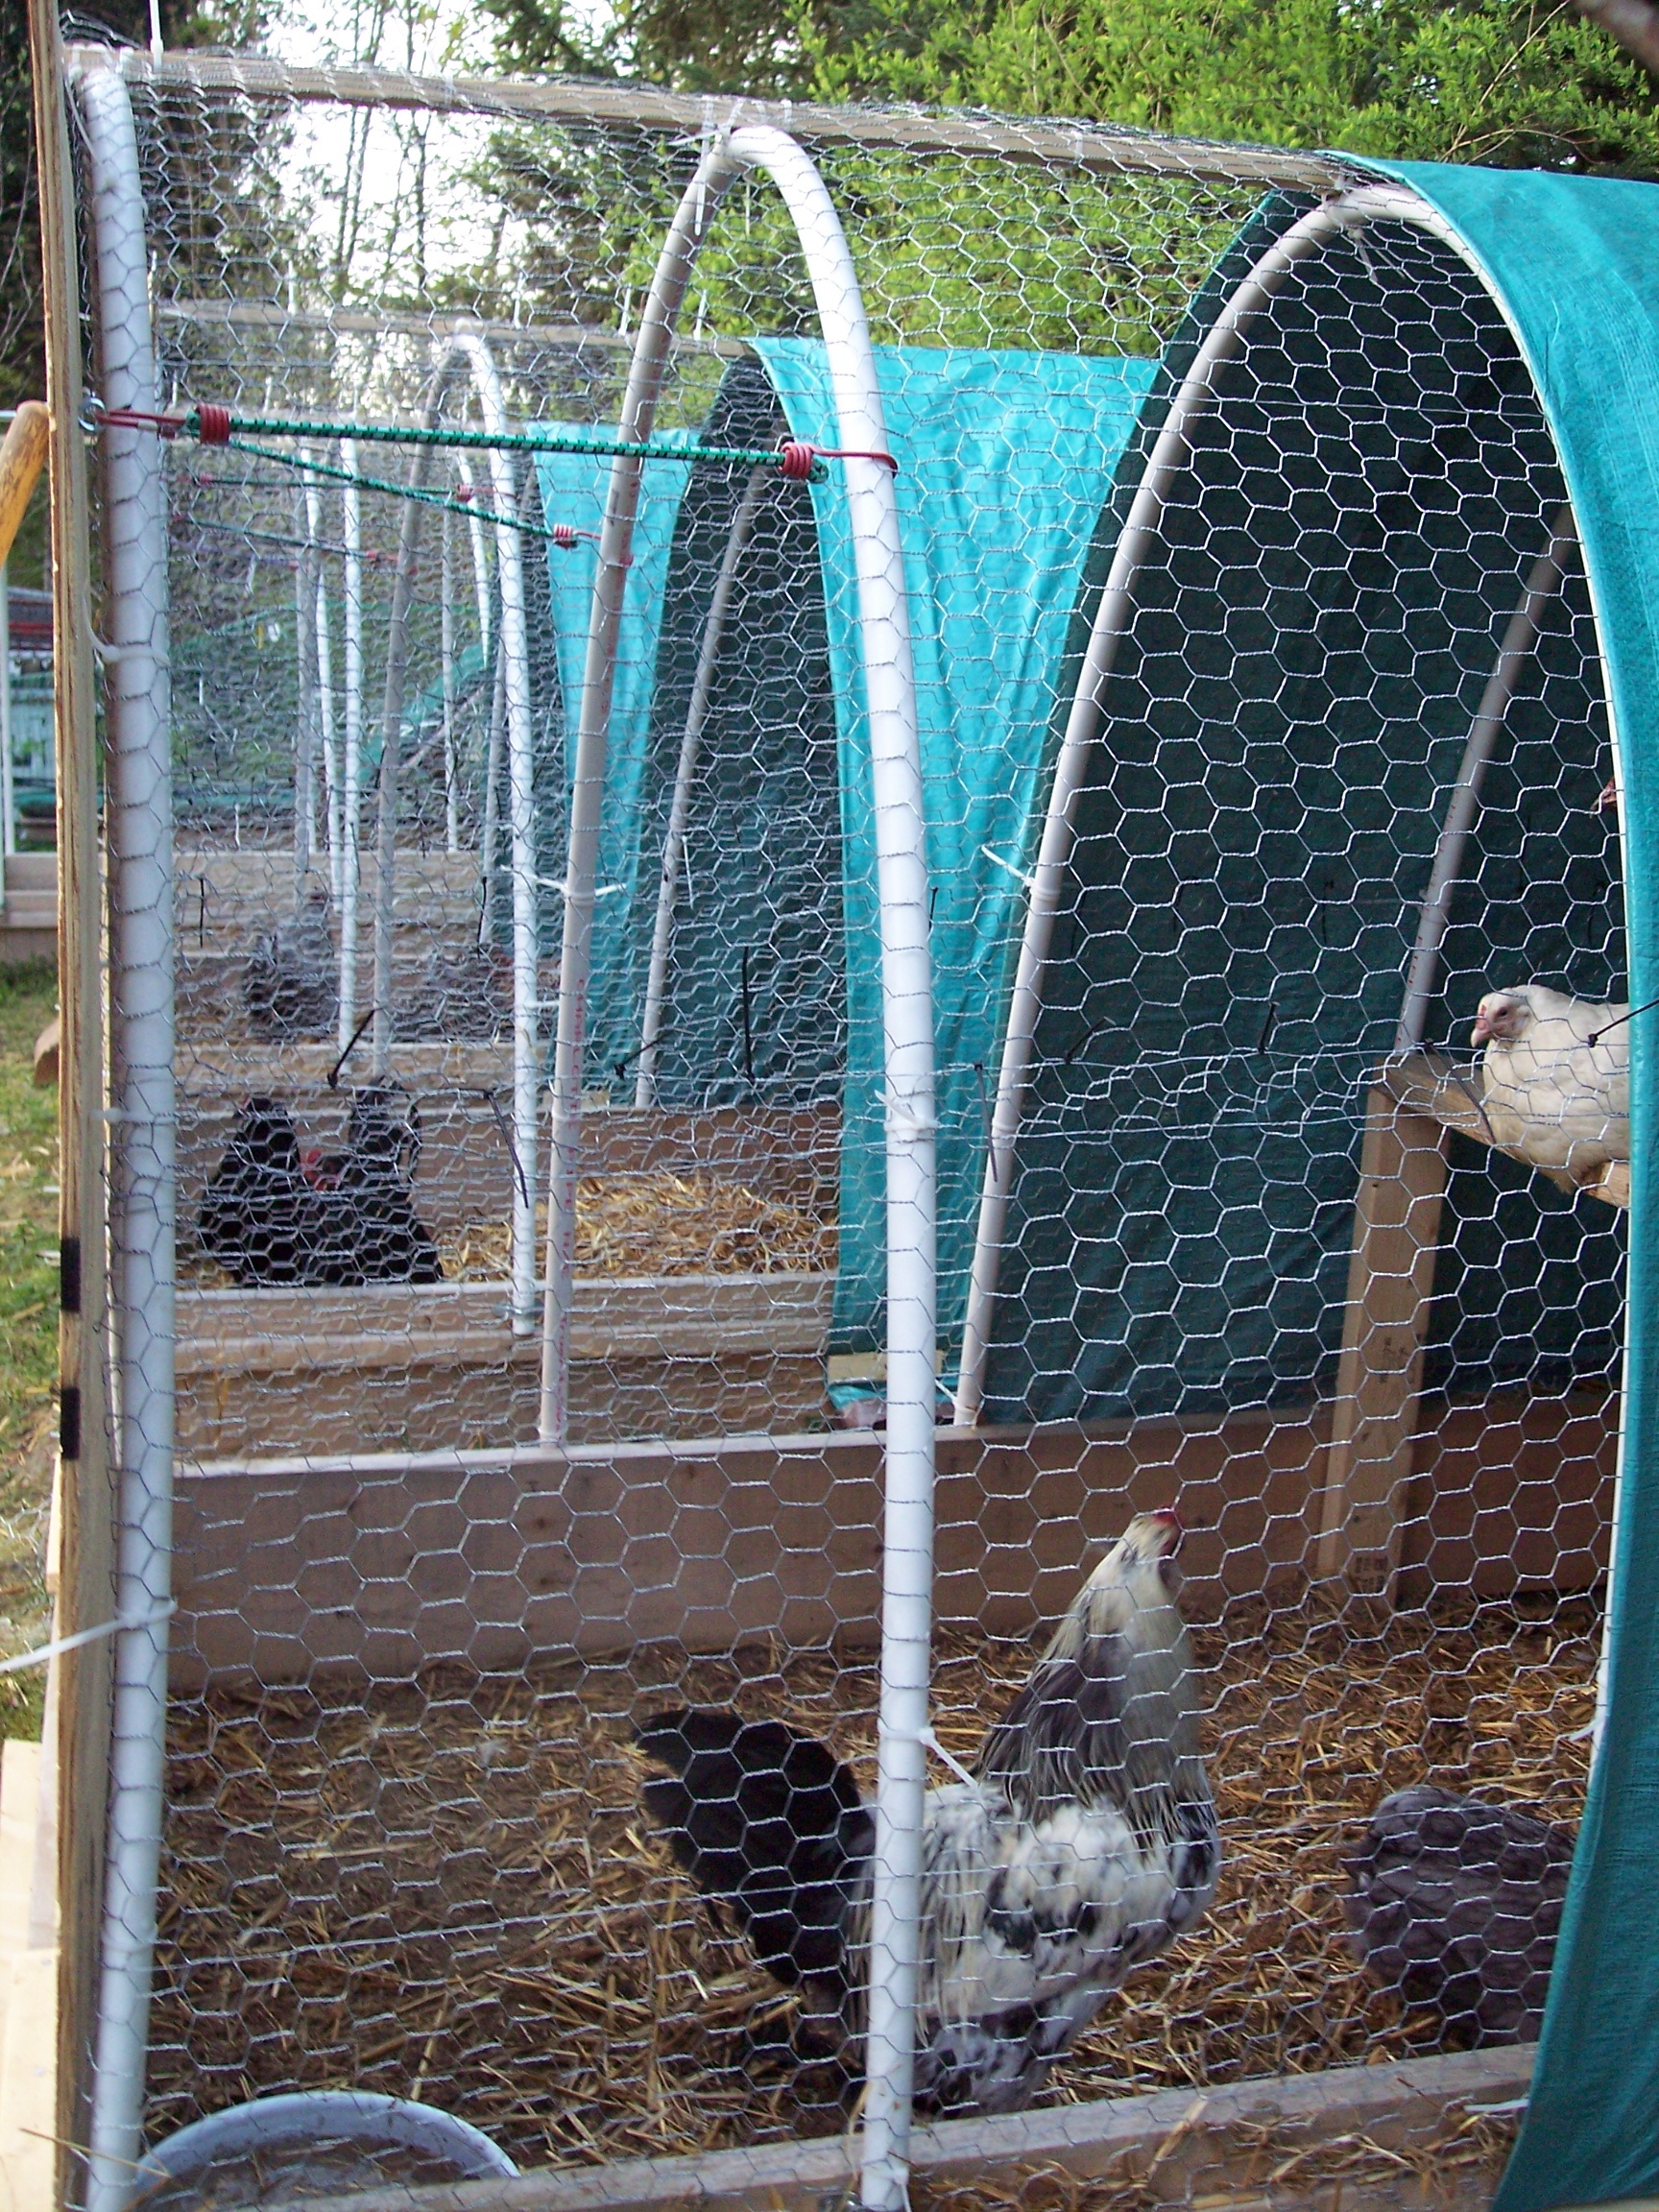 Poultry Breeding Pens | Fayrehale Farm: Gifts, Antiques, Christmas ...